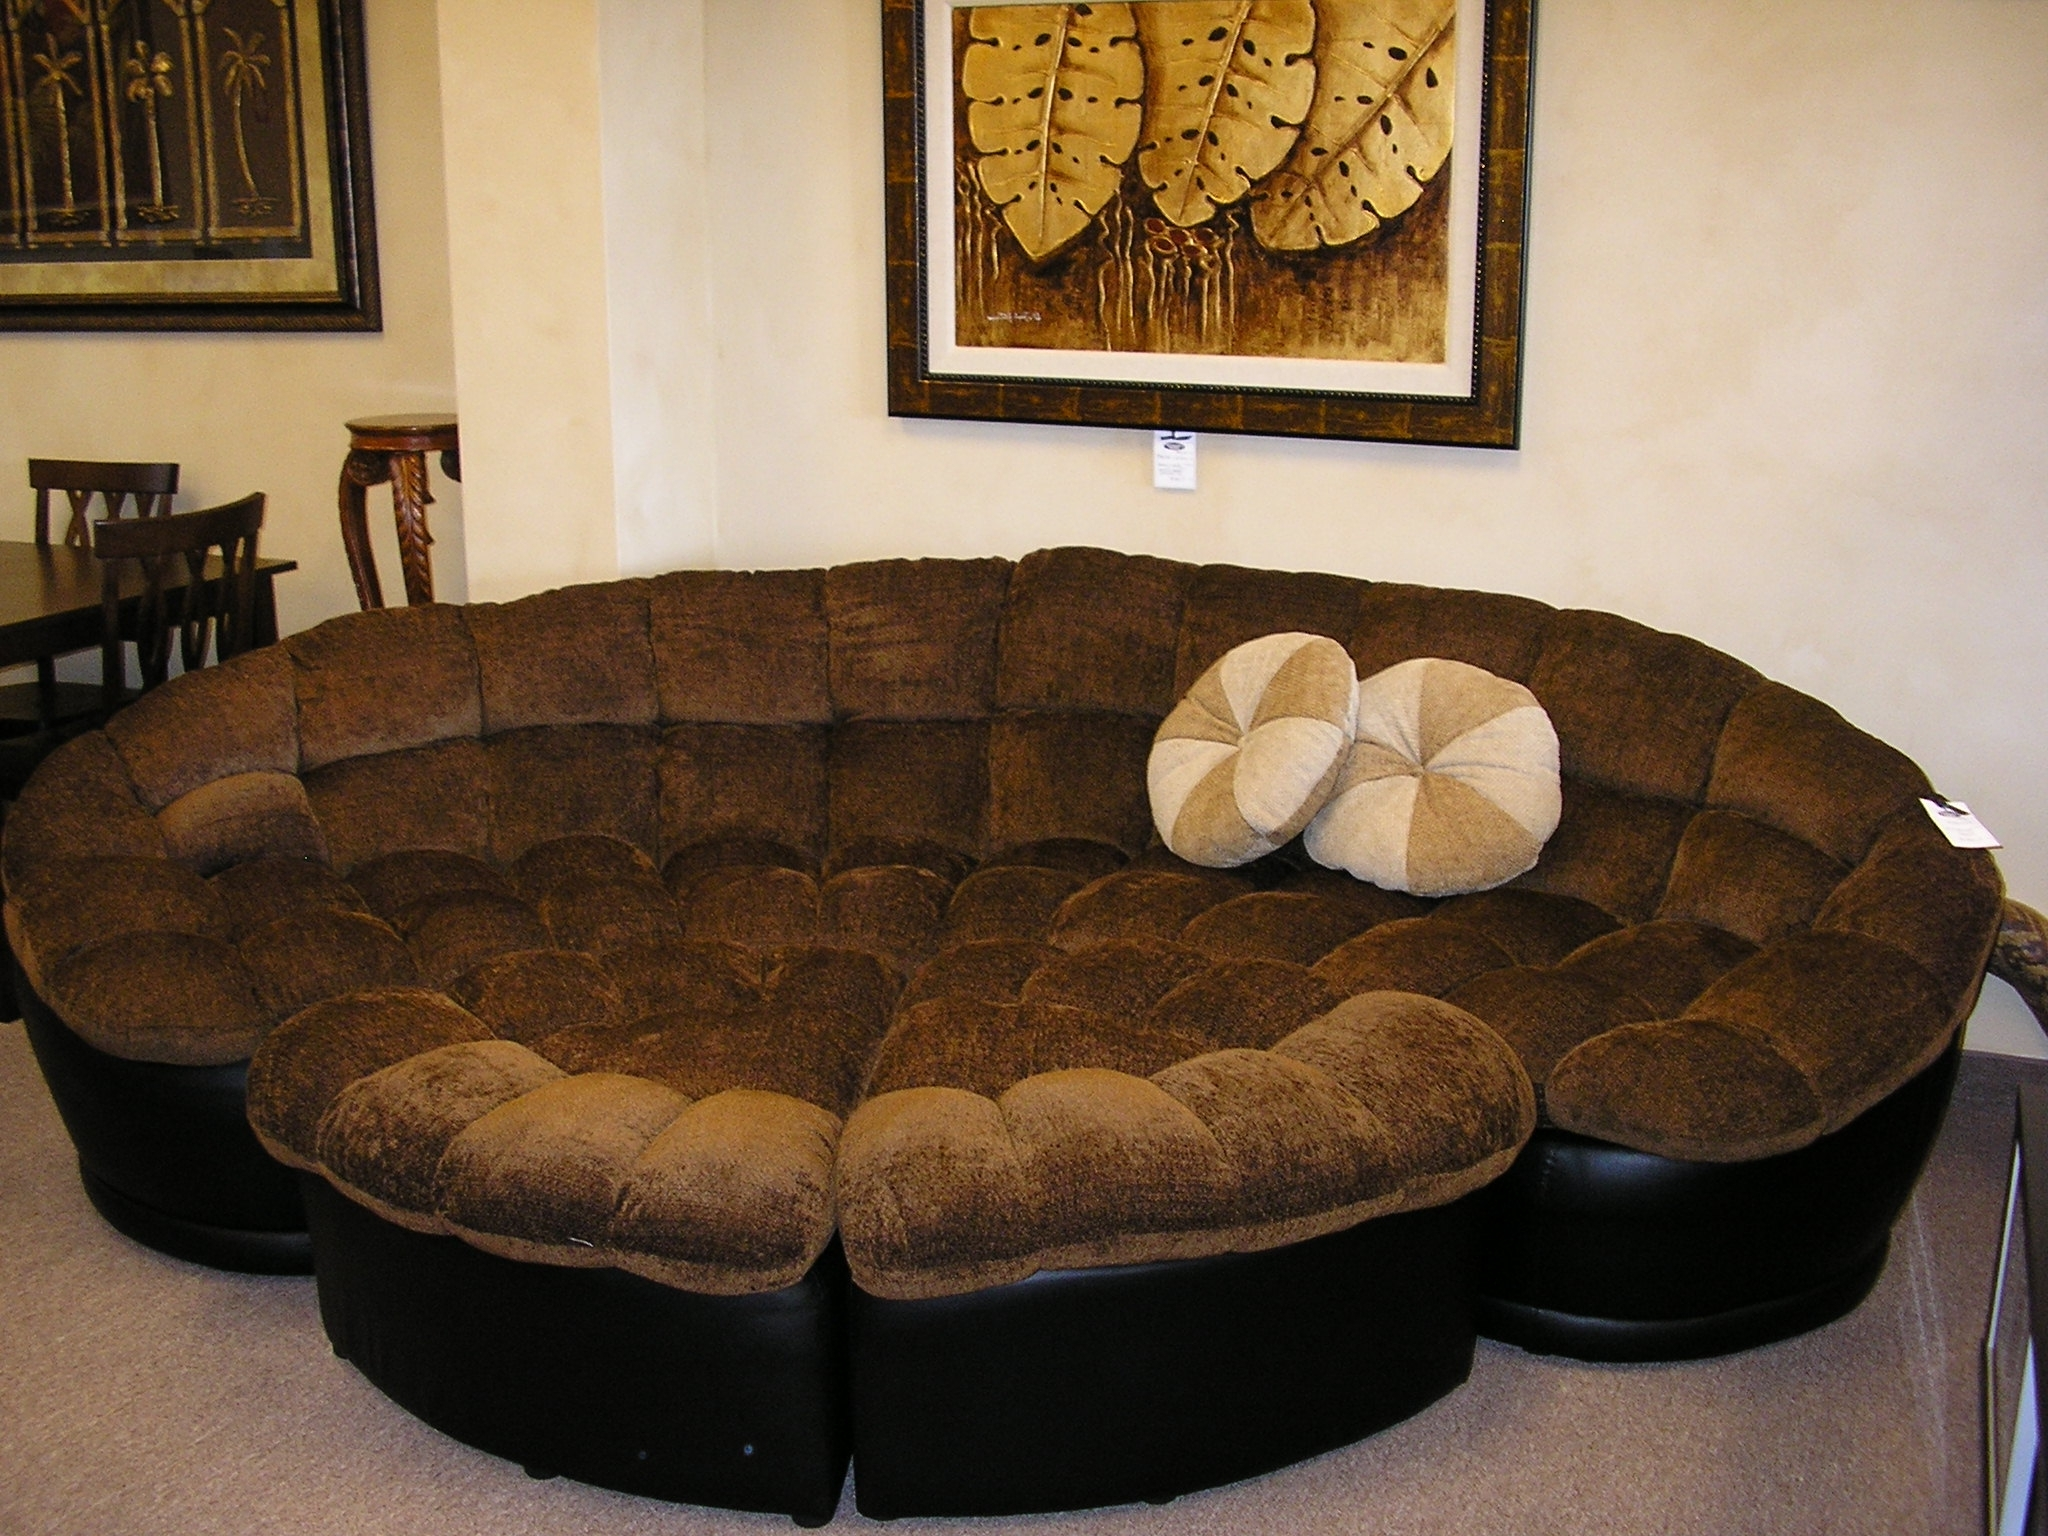 Round Sectional Sofas Inside Well Known Sectional Sofa Design: Beautiful Round Sectional Sofas Couches And (View 12 of 20)